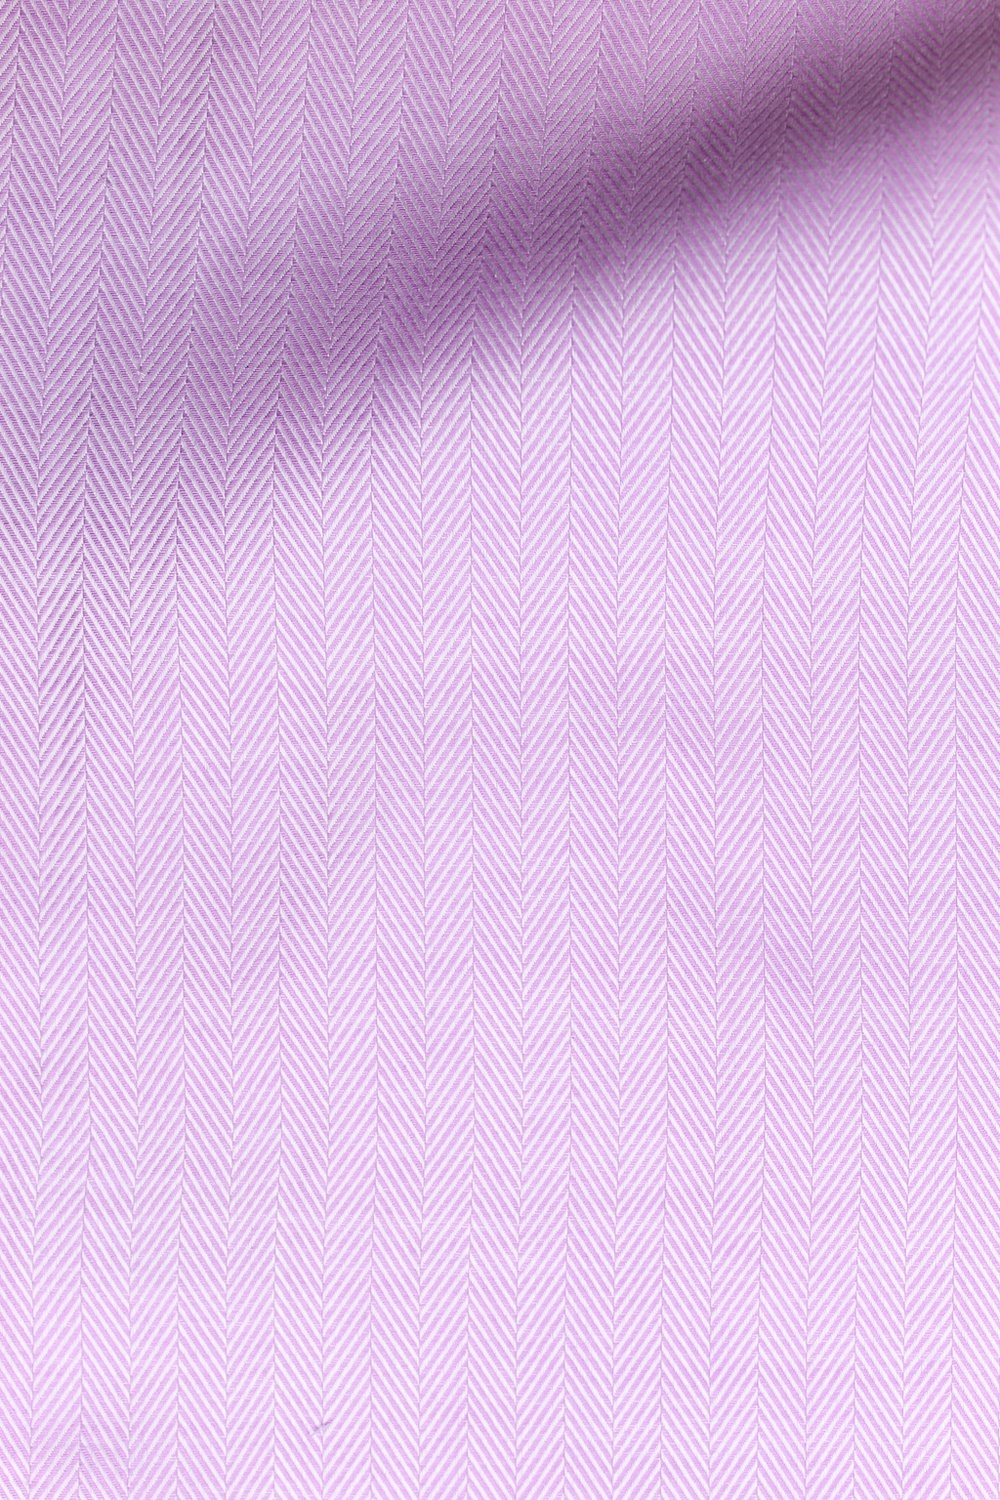 6698 Purple Herringbone.JPG